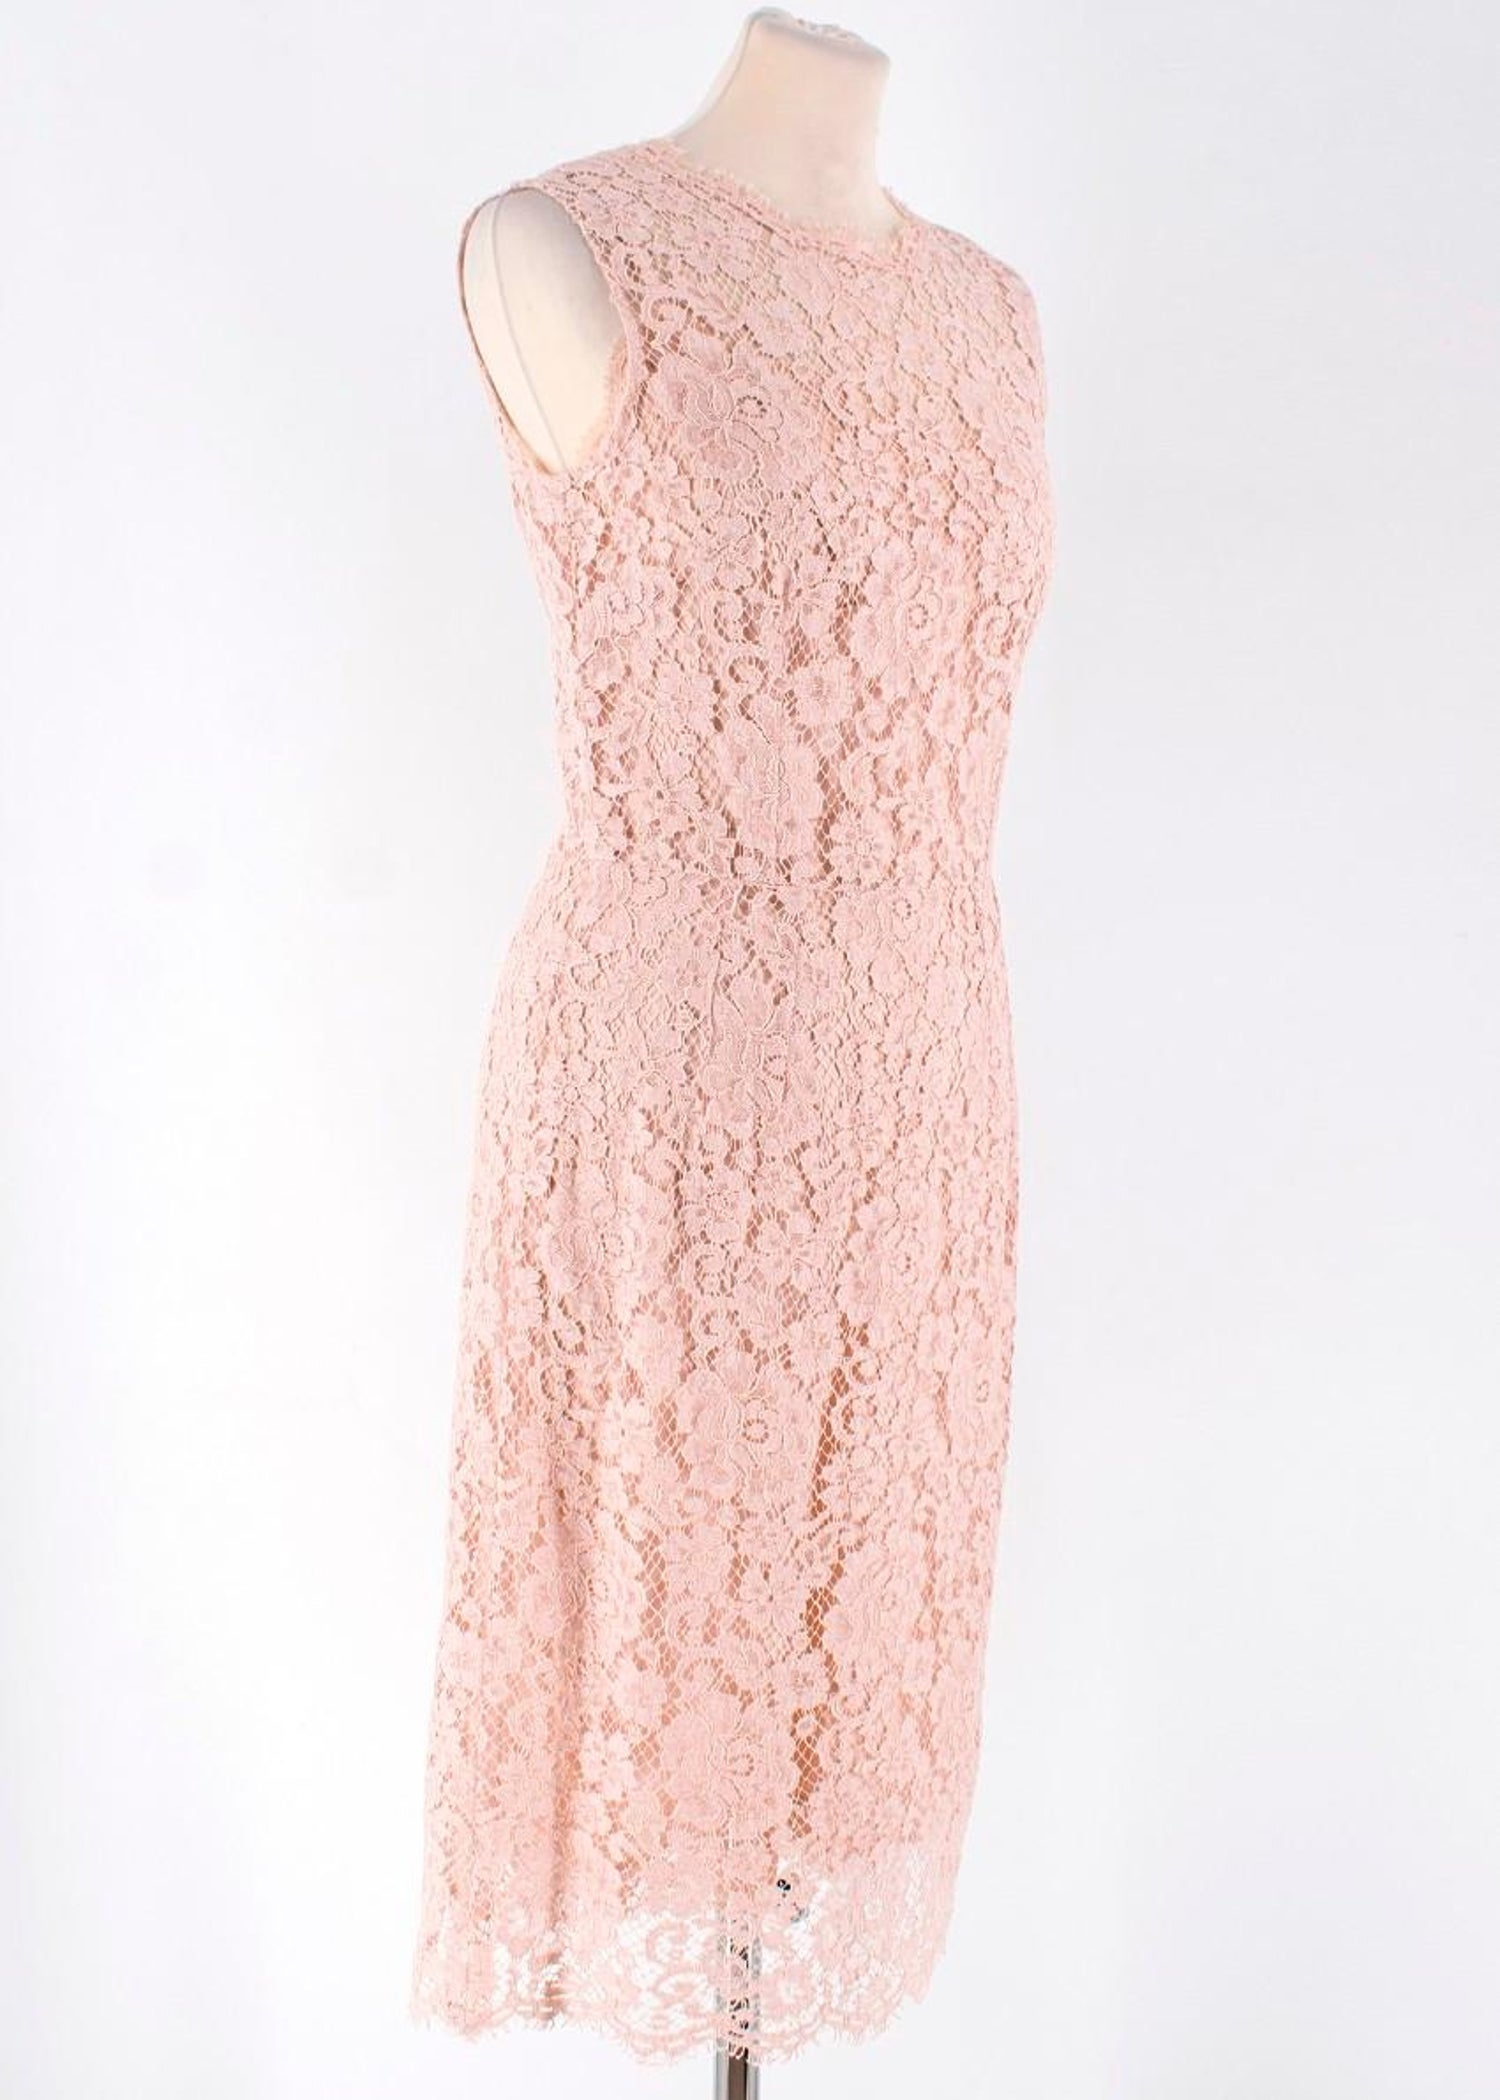 22d4af52 Dolce and Gabbana Nude Lace Dress US 4 For Sale at 1stdibs